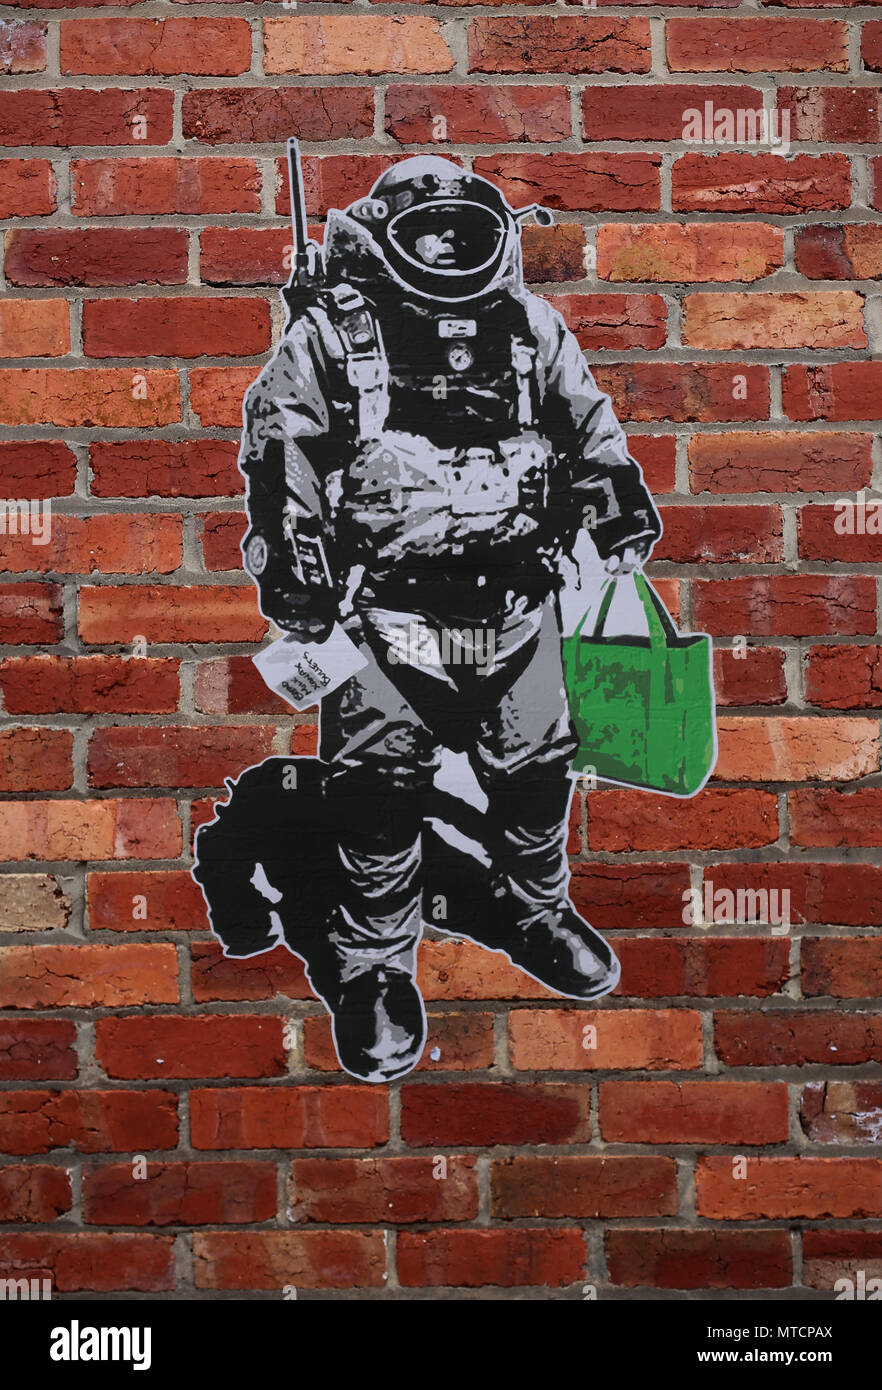 Street art satirizing the 'weaponized' climate of fear in daily life. Artist - The Crank Institute - Stock Image